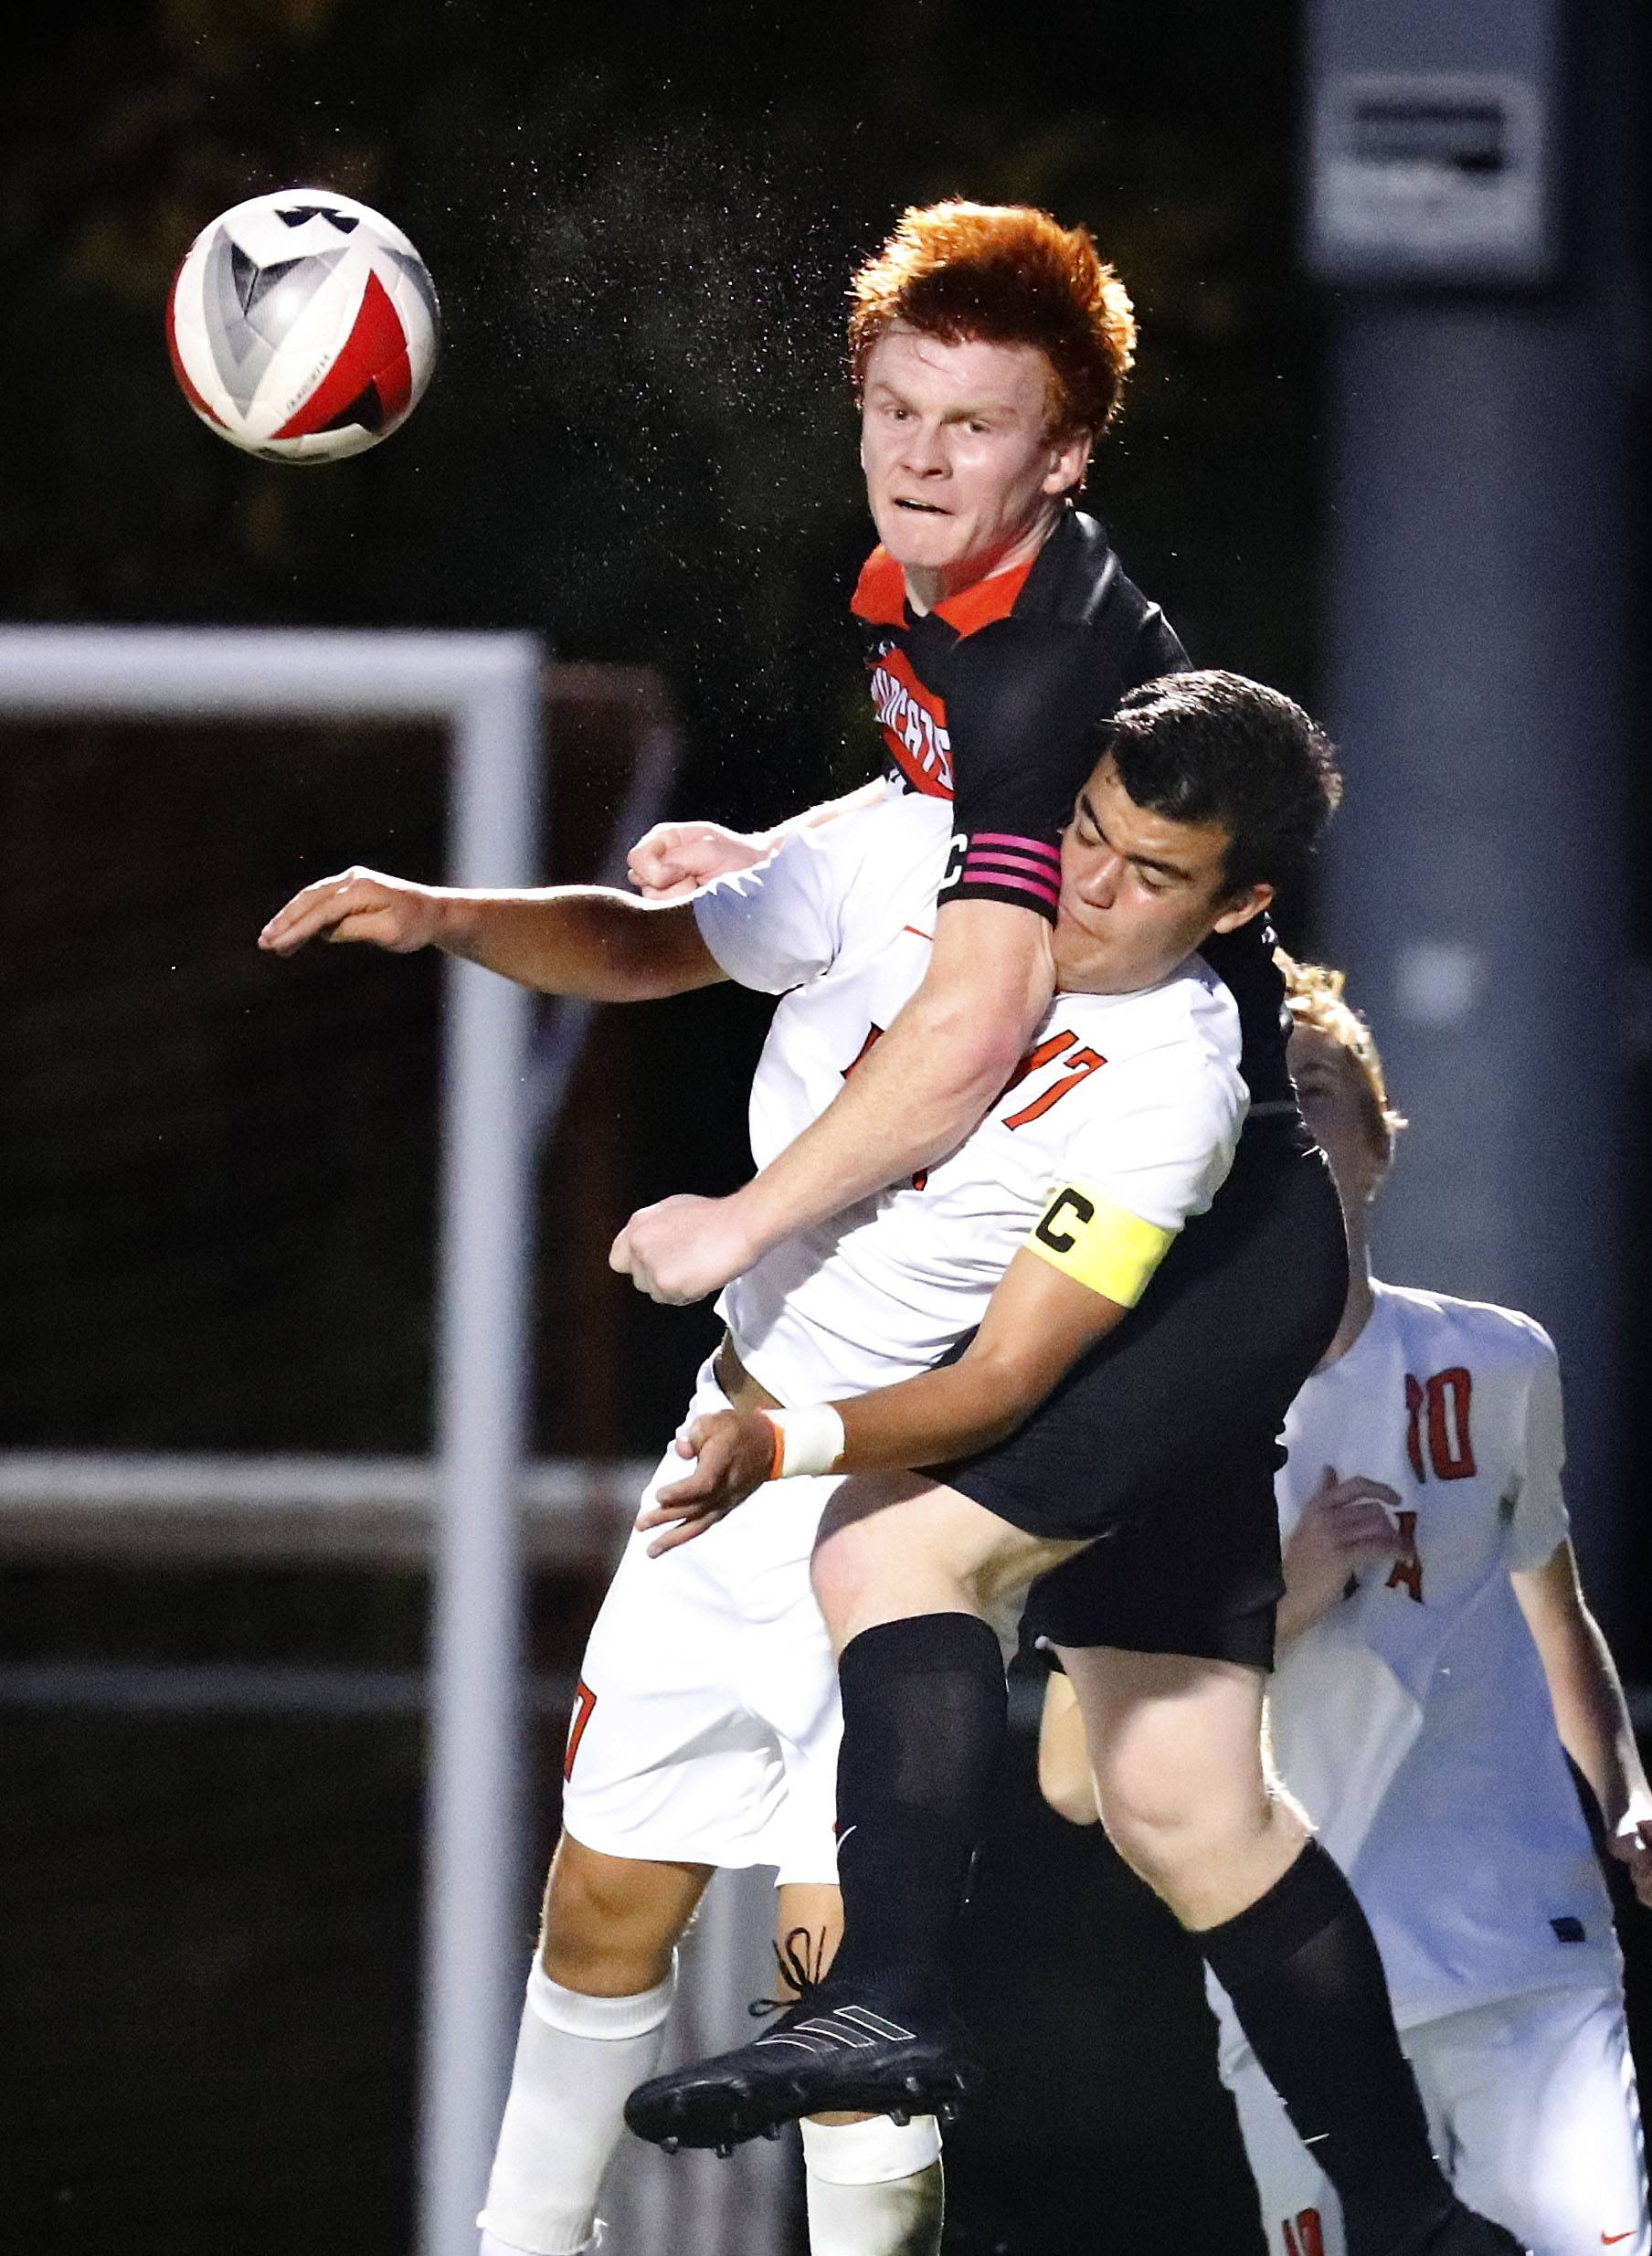 Libertyville's Evan Rasmussen, left, goes up for a header with Lake Forest Academy's Sergio Estrelles during their game Tuesday night in Libertyville.